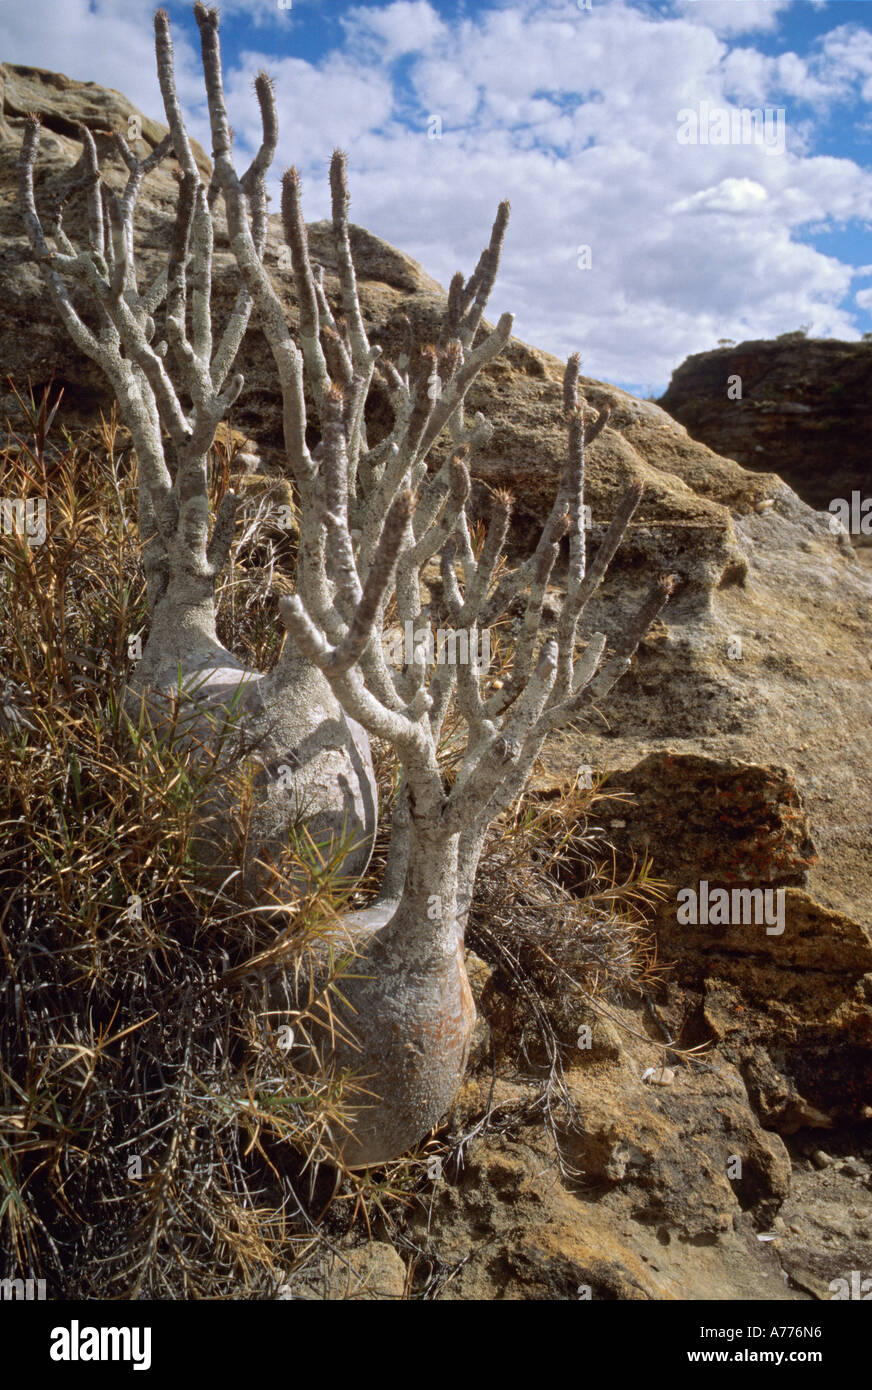 Miniature Baobab tree standing 50 centimetres high but over 100 years old in Isalo National Park central Madagascar - Stock Image